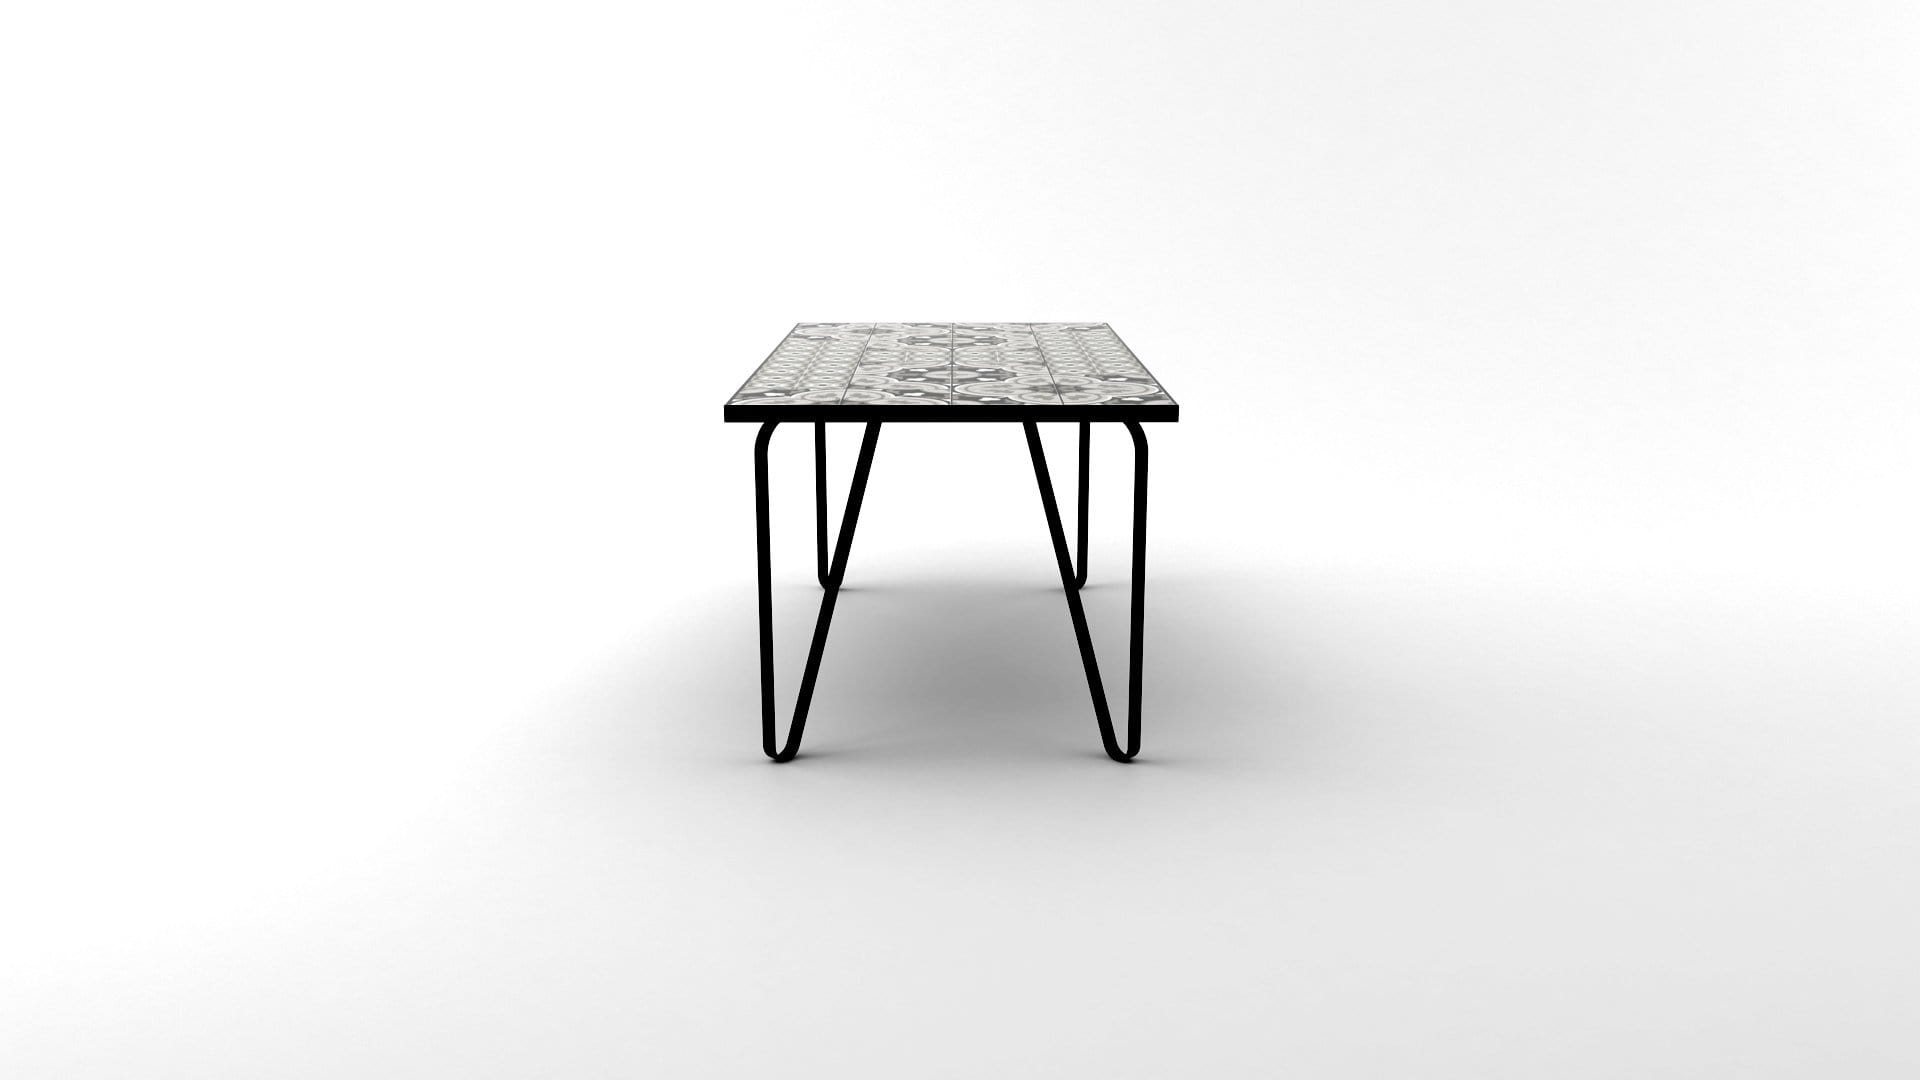 Ceramic tiled dining table with black legs and black fillings